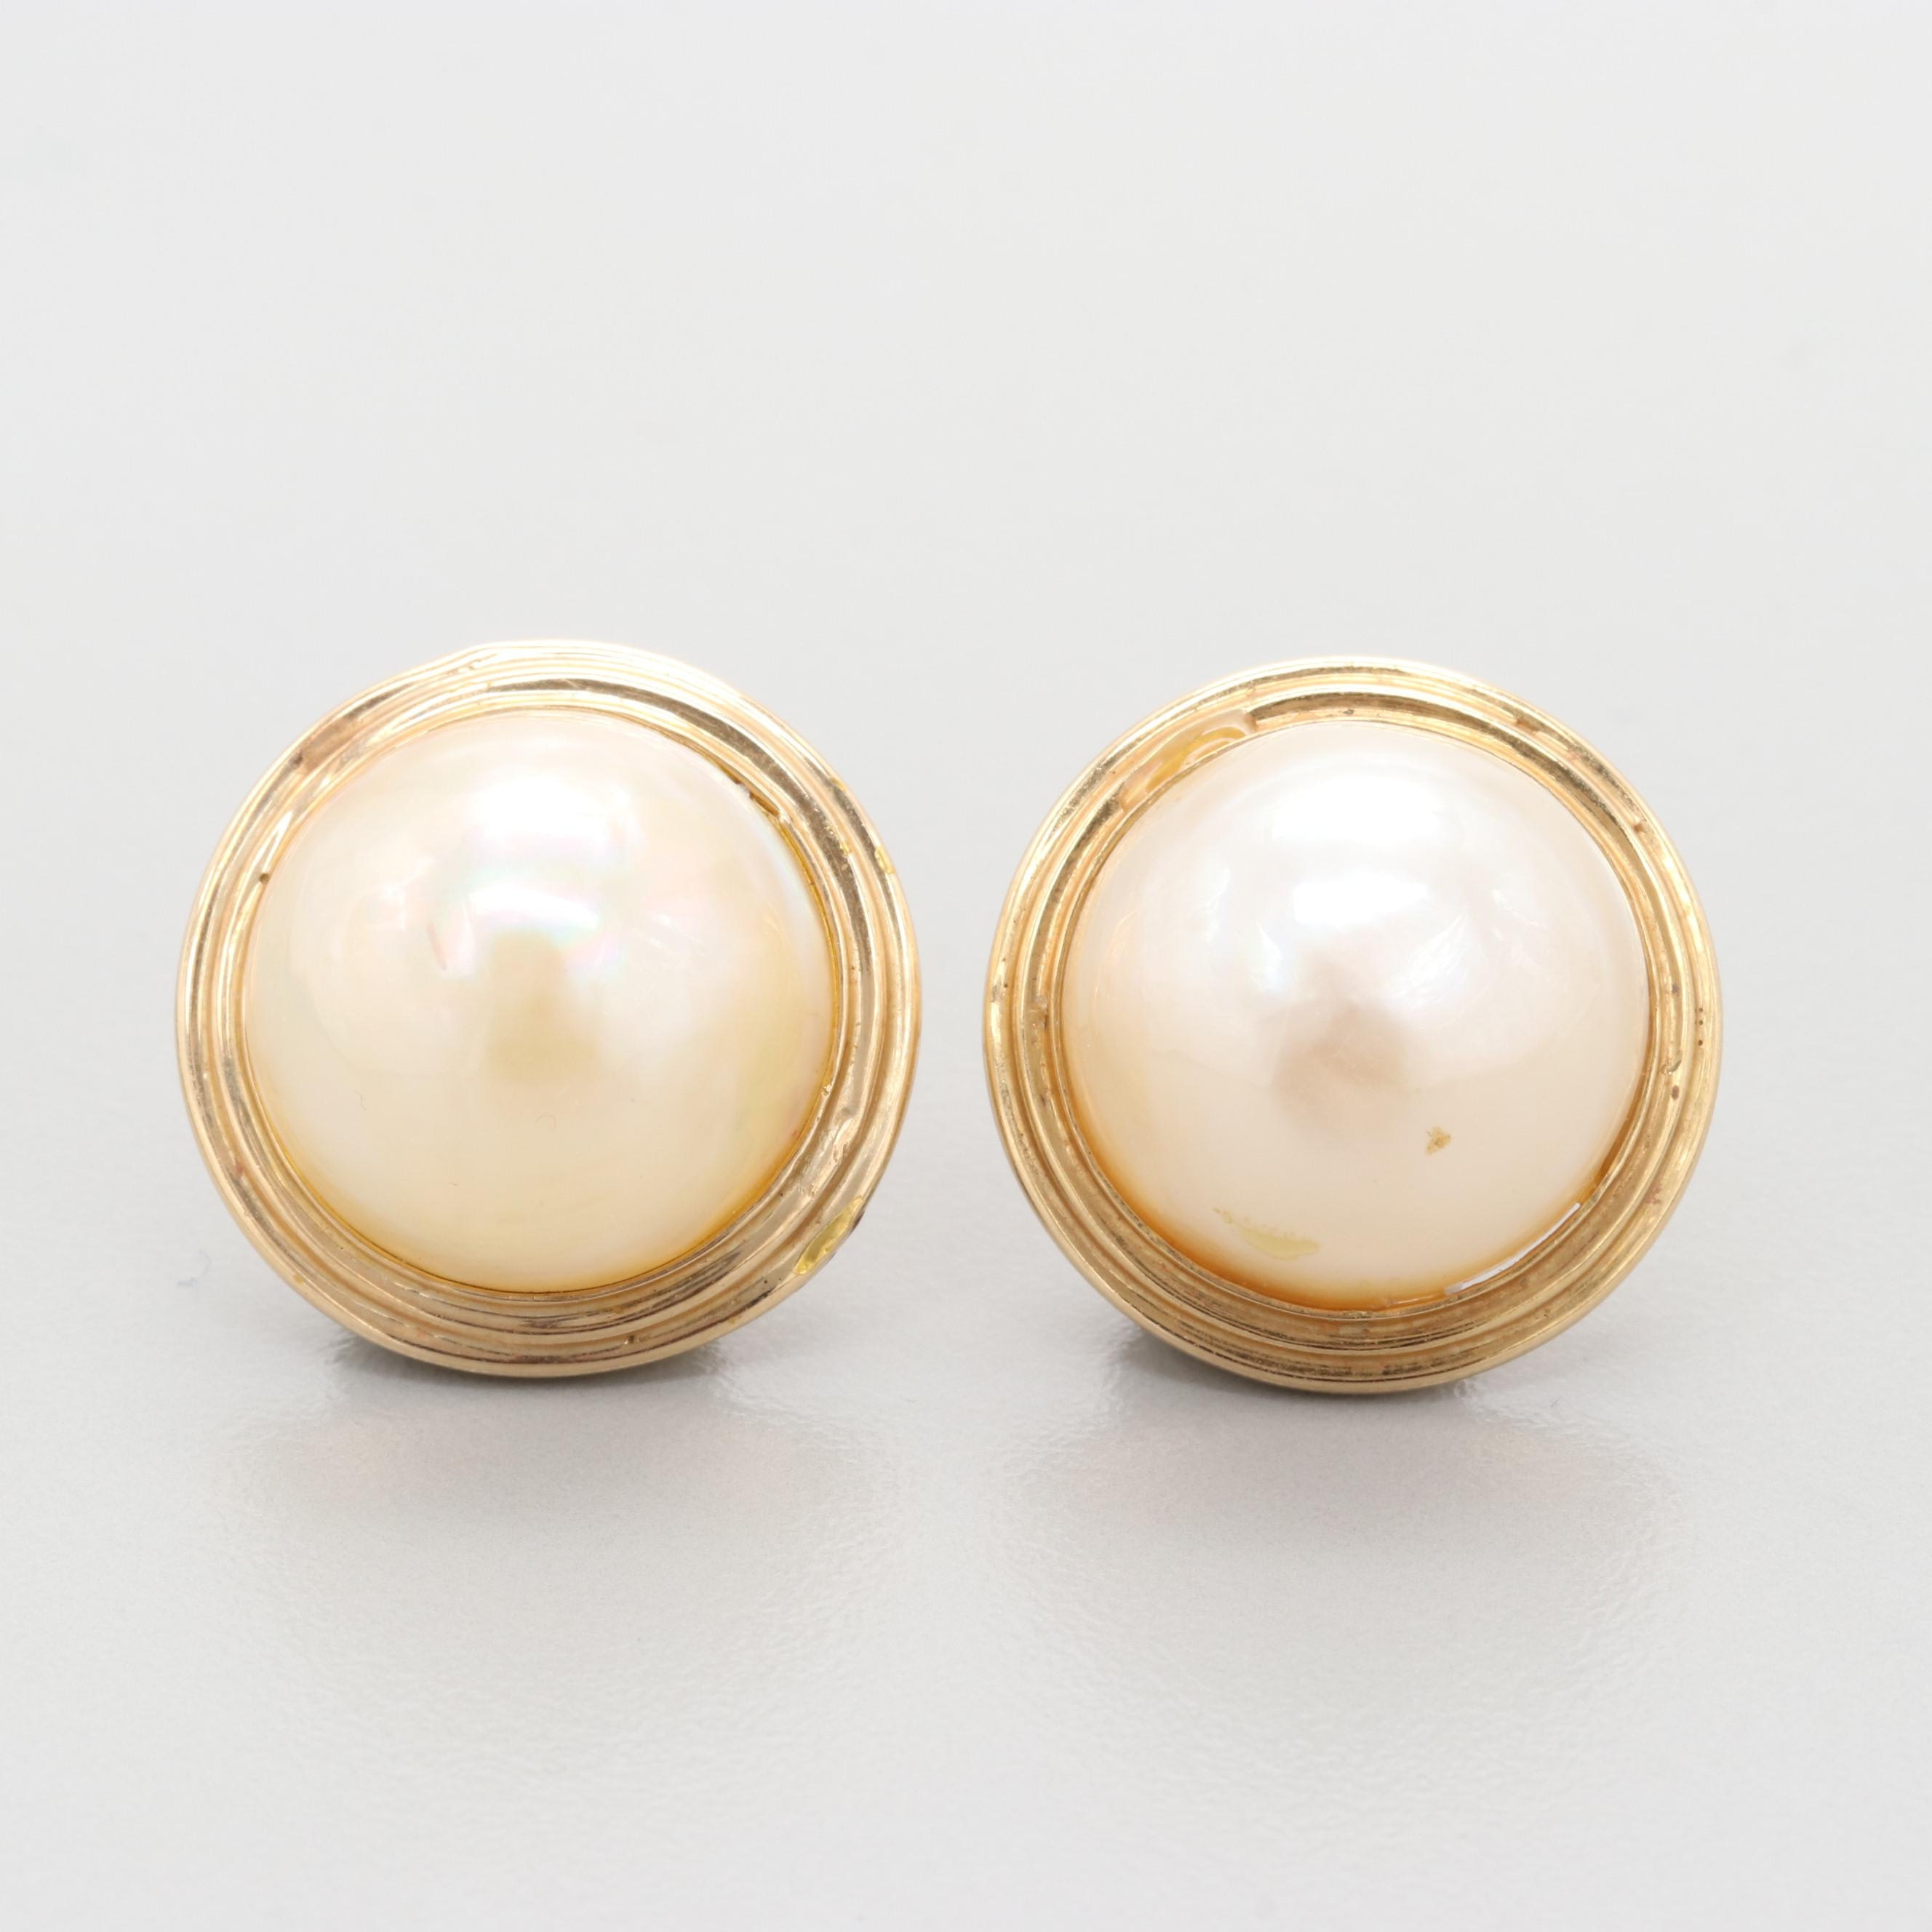 10K Yellow Gold Cultured Mabe Pearl Stud Earrings